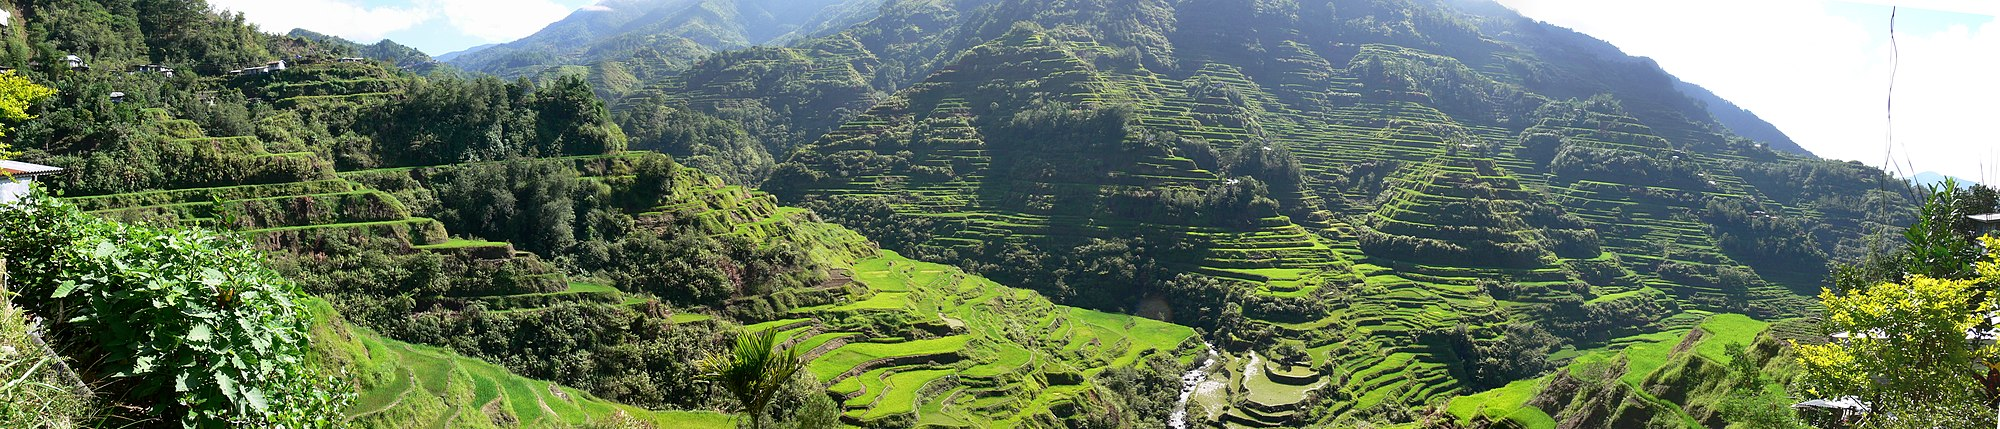 Ifugao/Igorot utilized terrace farming to grow crops in the steep mountainous regions of northern Philippines. - Philippines